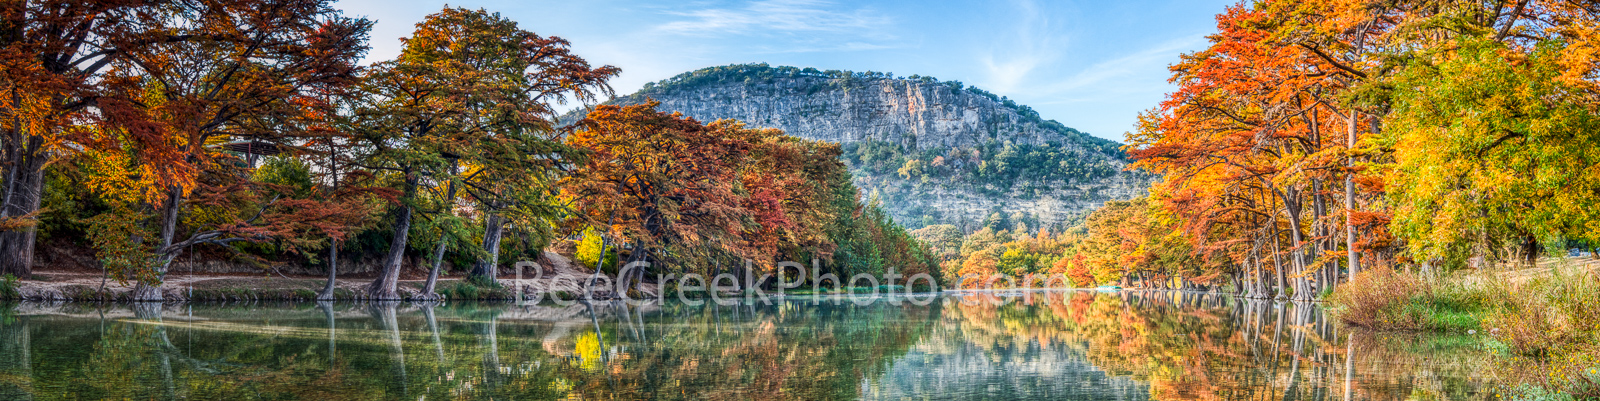 Scenic Fall Frio River Pano 3717 - We capture this scenic fall frio river pano on our first trip this year into the hill country...